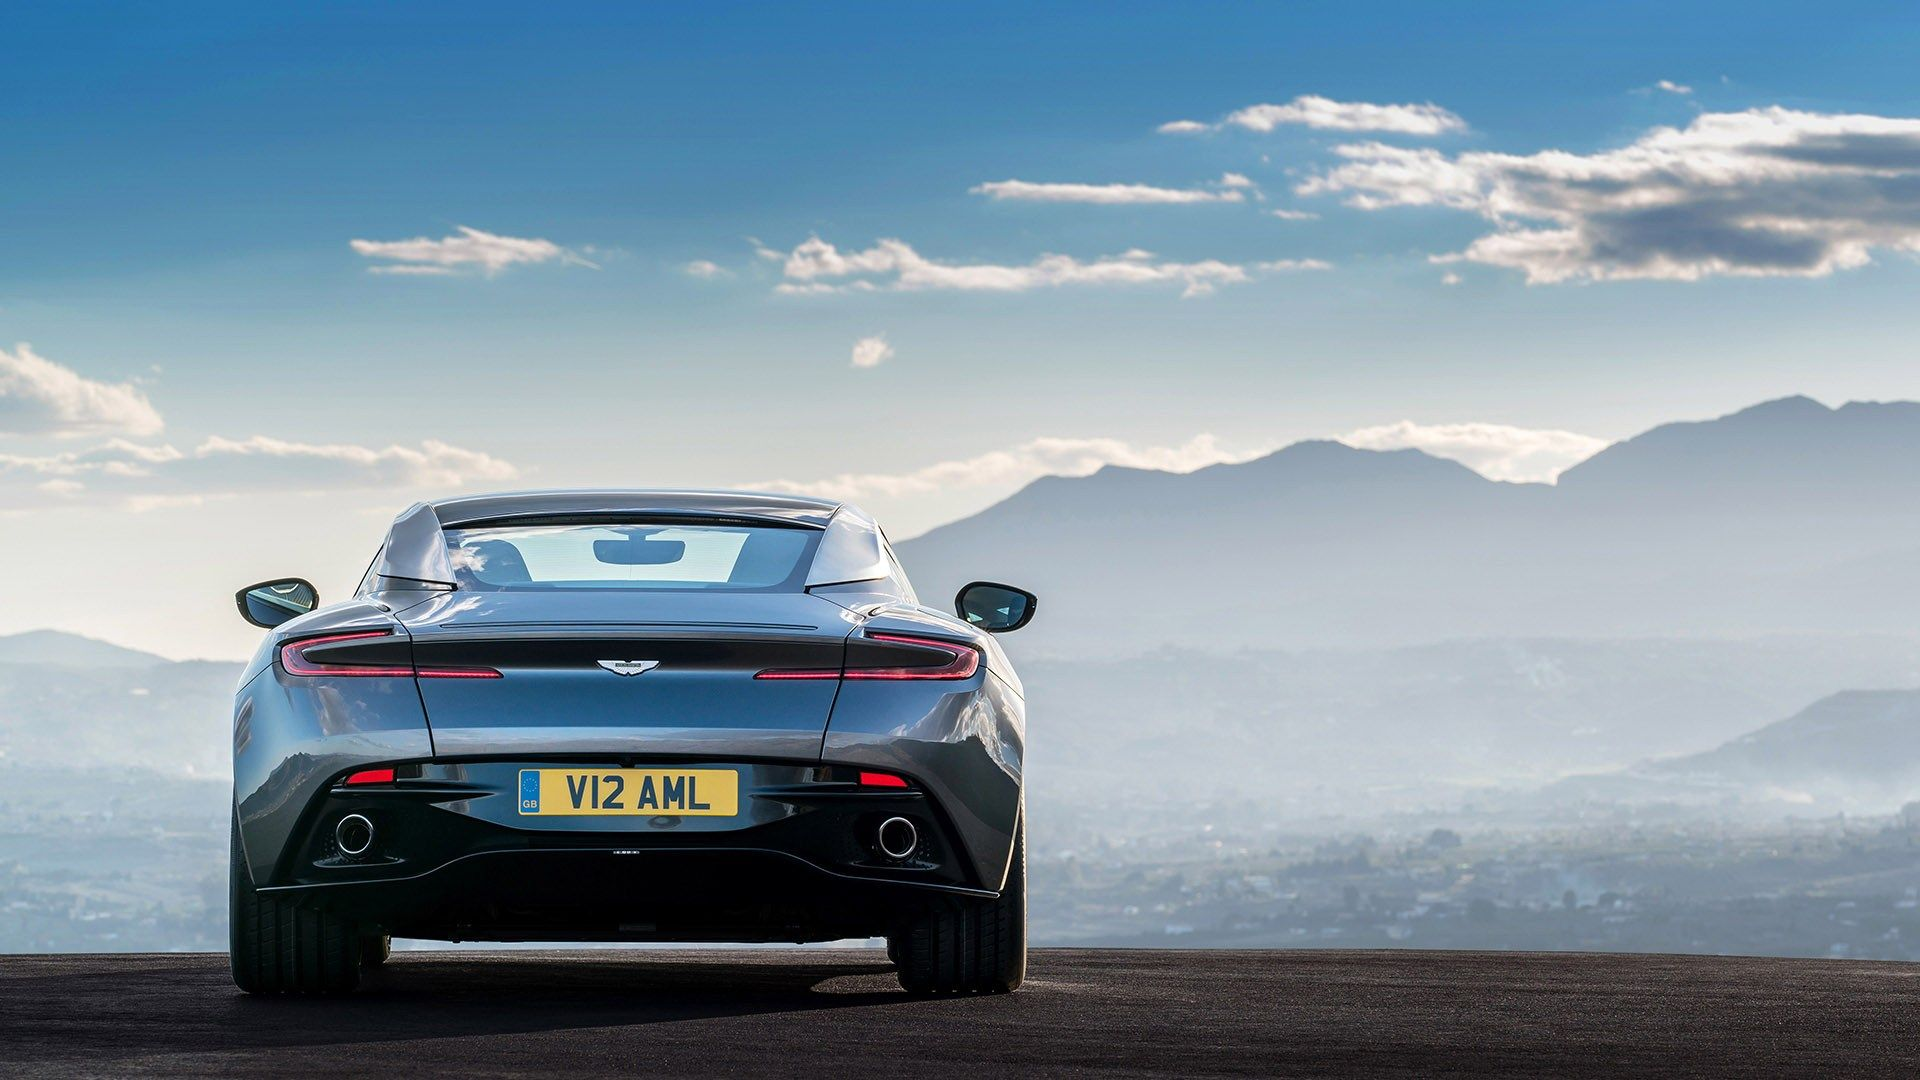 The Aston Martin Db11 Tuscany Trip Is One Of New Specially Curated Luxury Experiences Offered